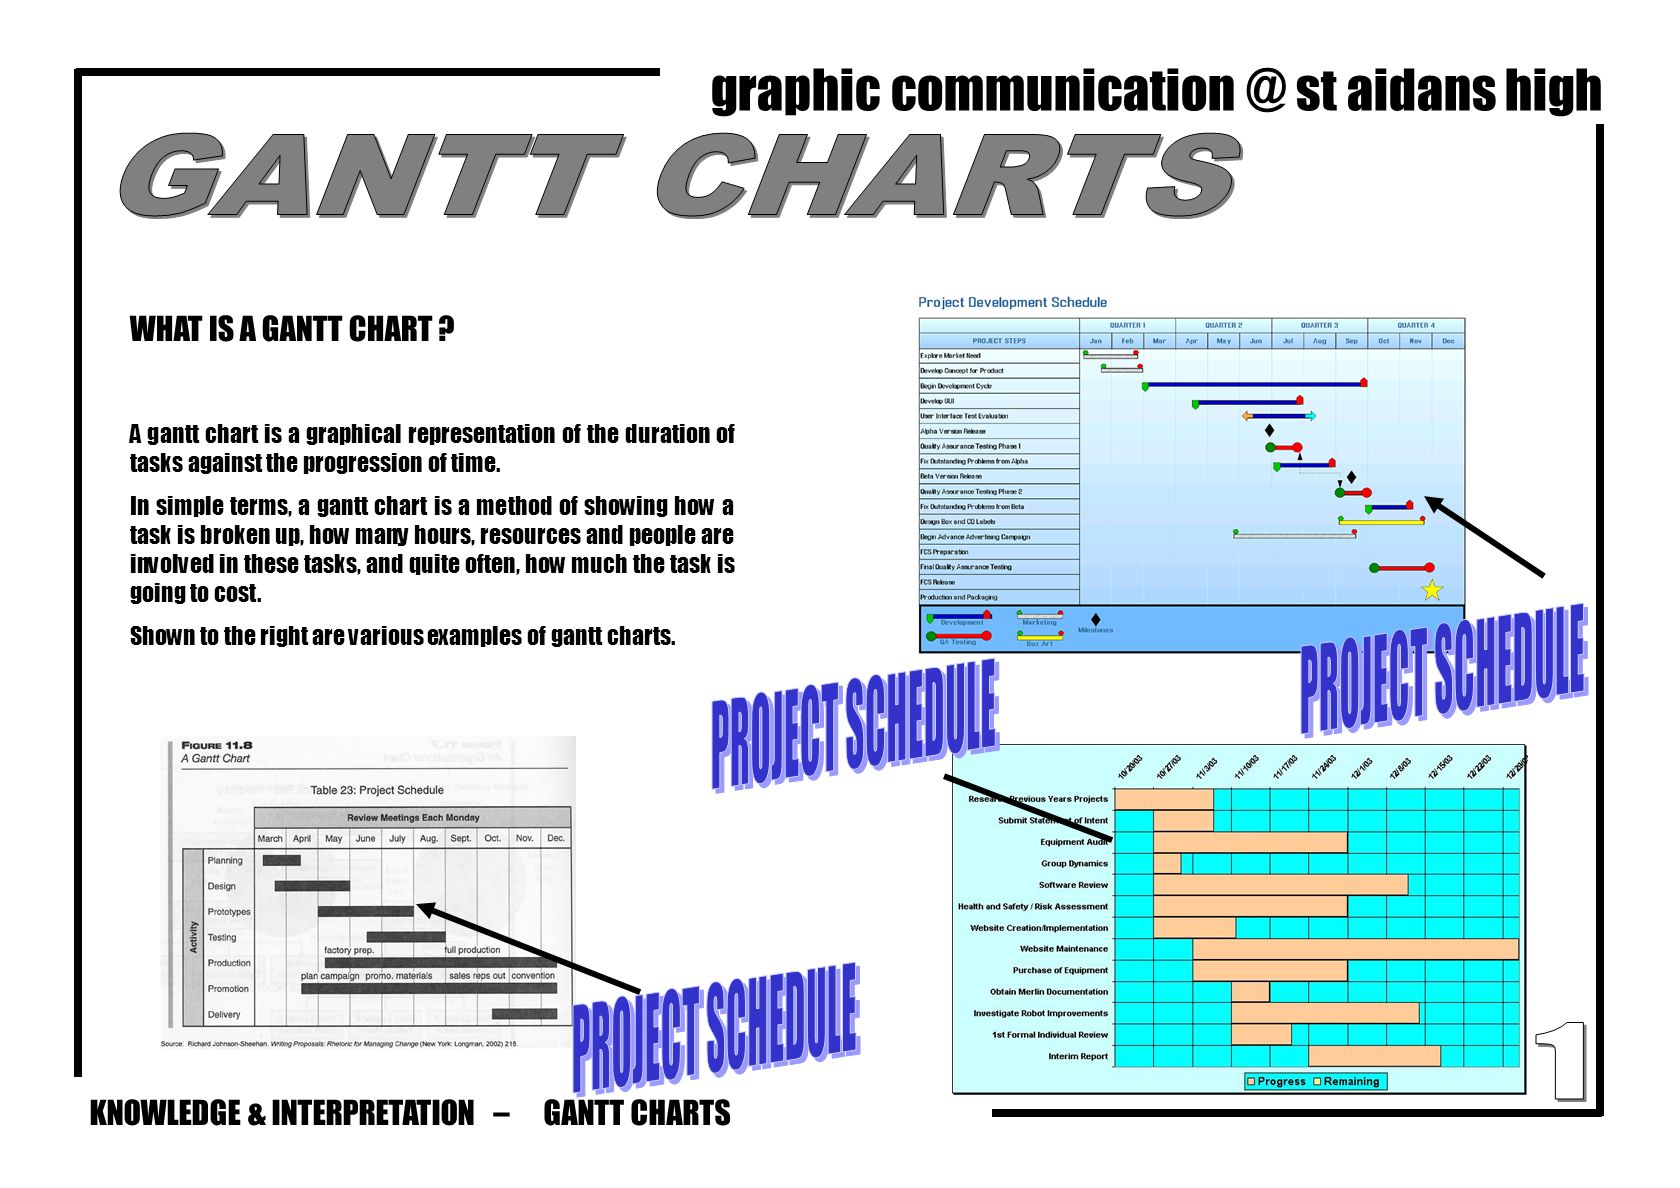 Knowledge interpretation graphic st aidans high ppt download knowledge interpretation graphic communication st aidans high gantt charts what is a gantt nvjuhfo Images